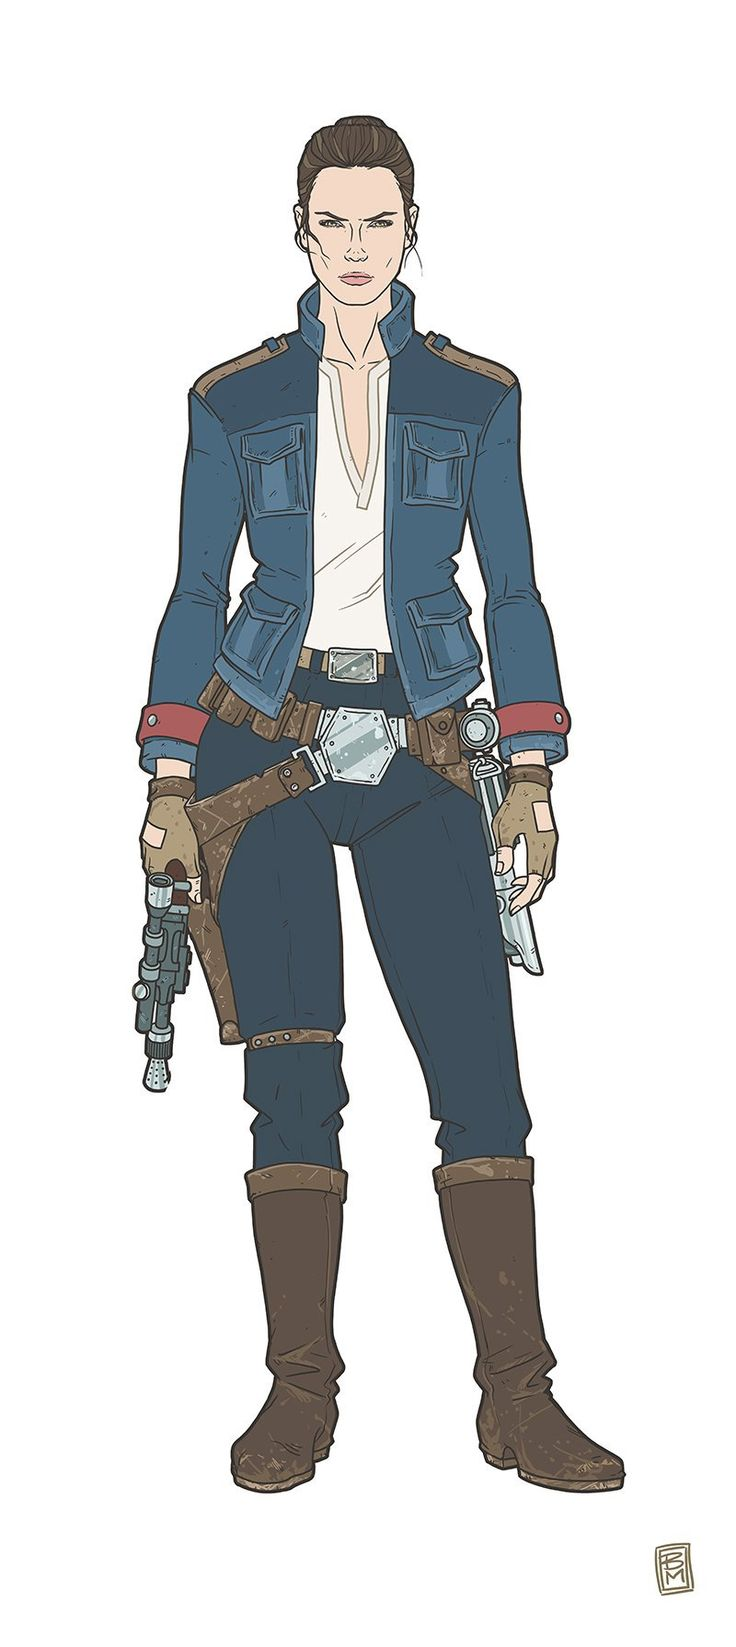 Rey redesign - Star Wars: The Force Awakens